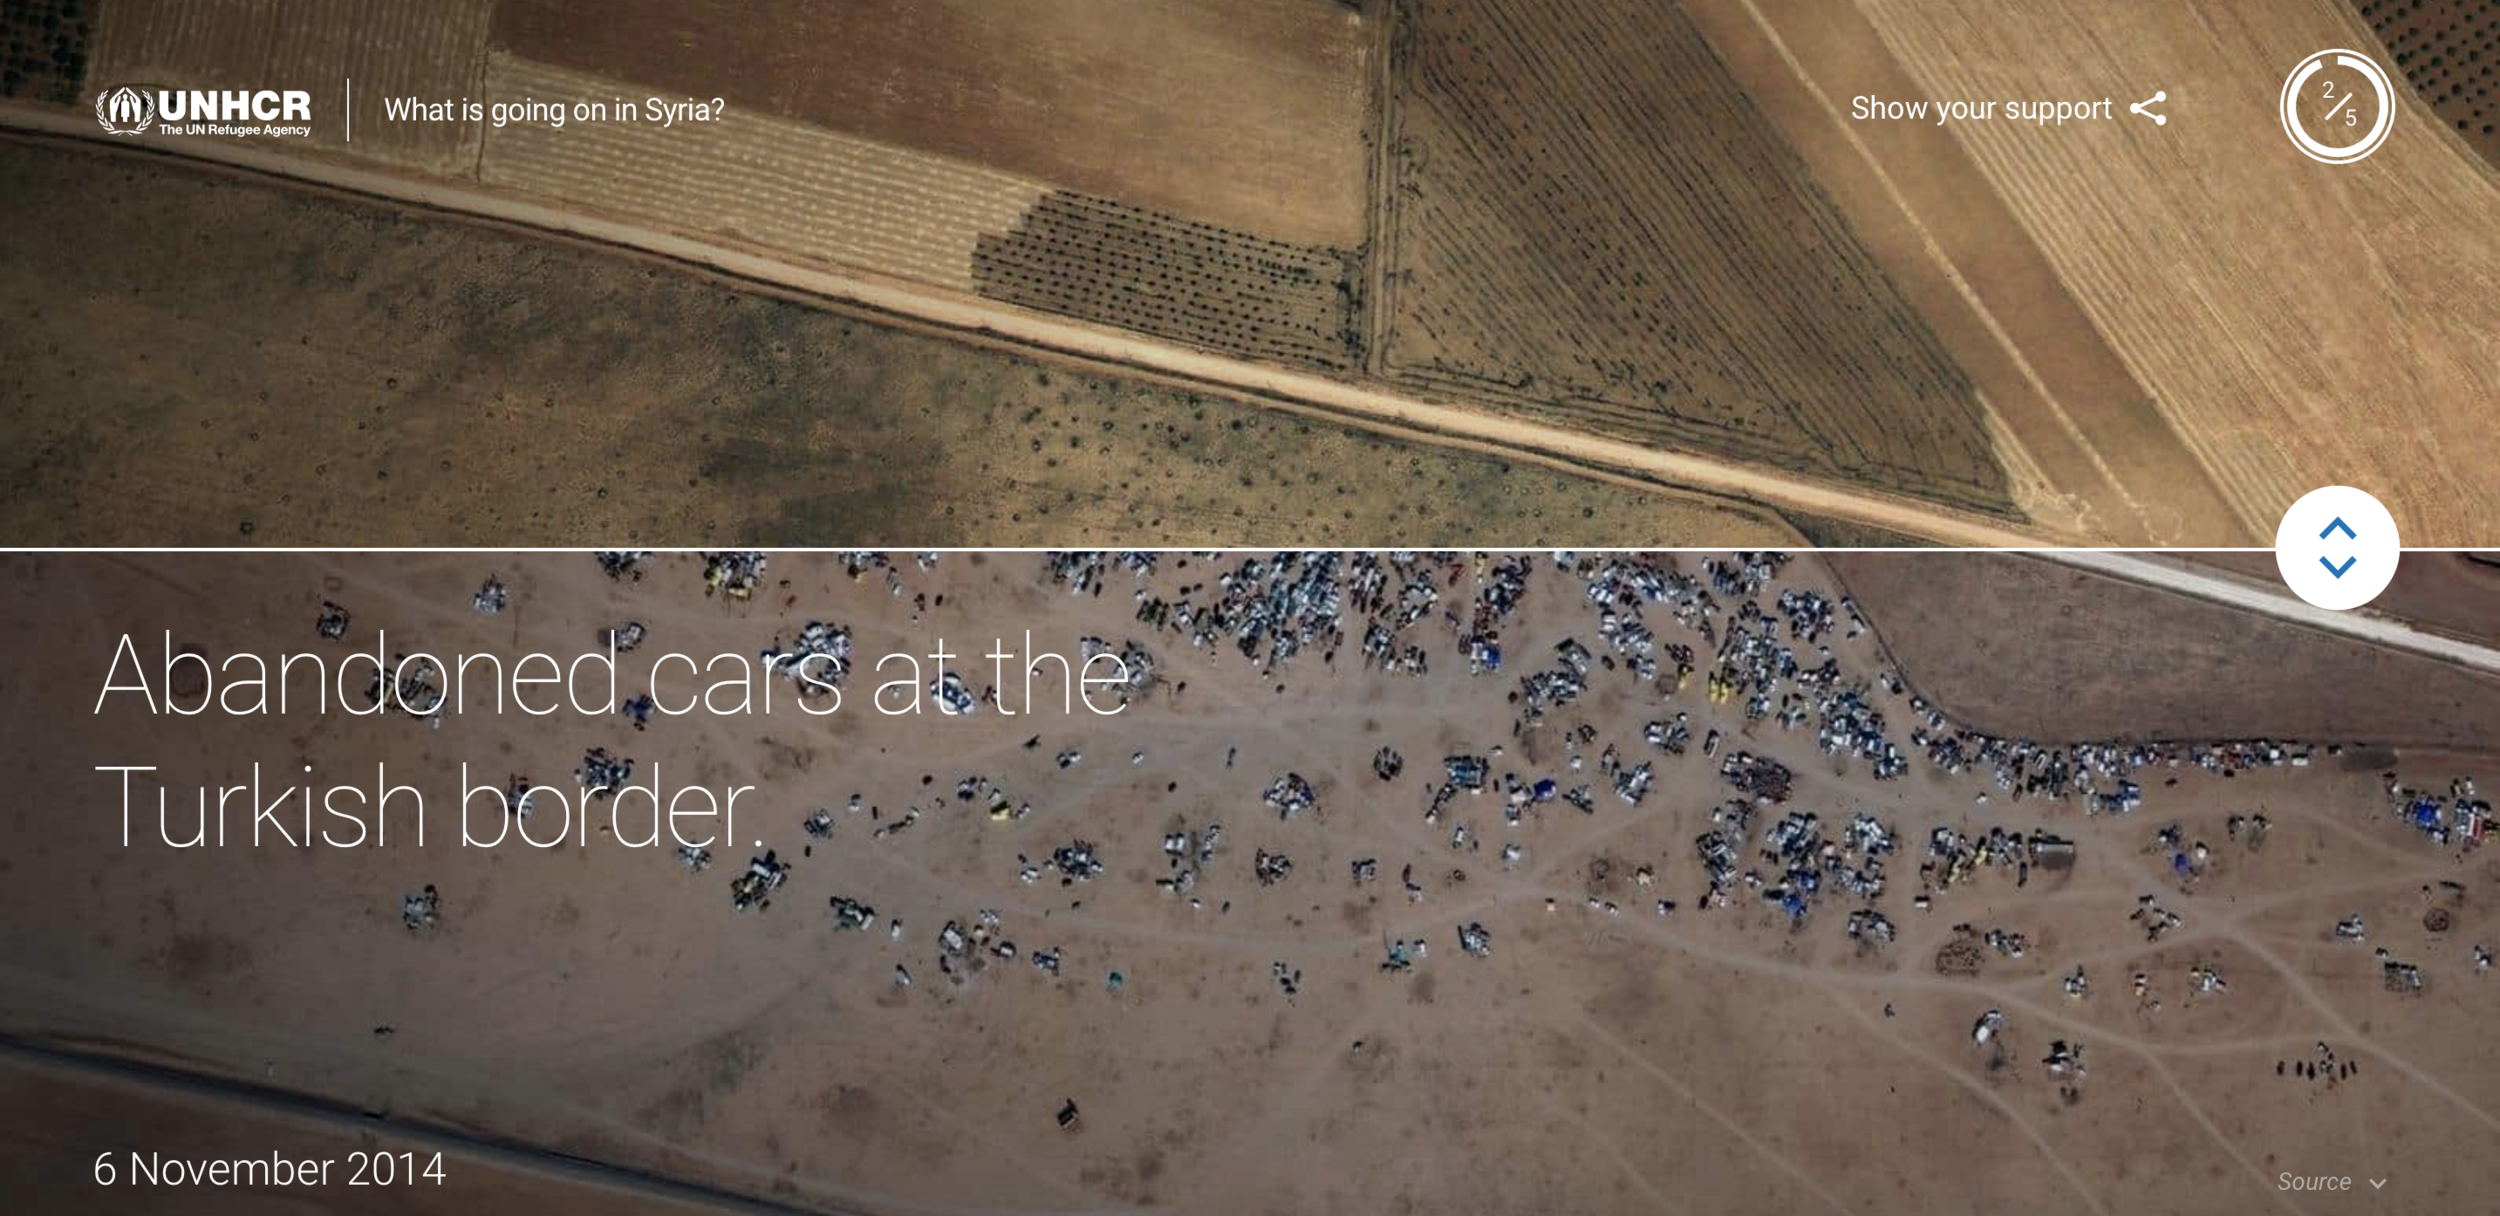 Never before released satellite imagery.  The Google Earth team released never before seen satellite imagery to show the severity of the crisis in new ways. The above image showed how cars had been abandoned at the border by fleeing refugees. We combed through years of data to find arresting, relevant data to share.